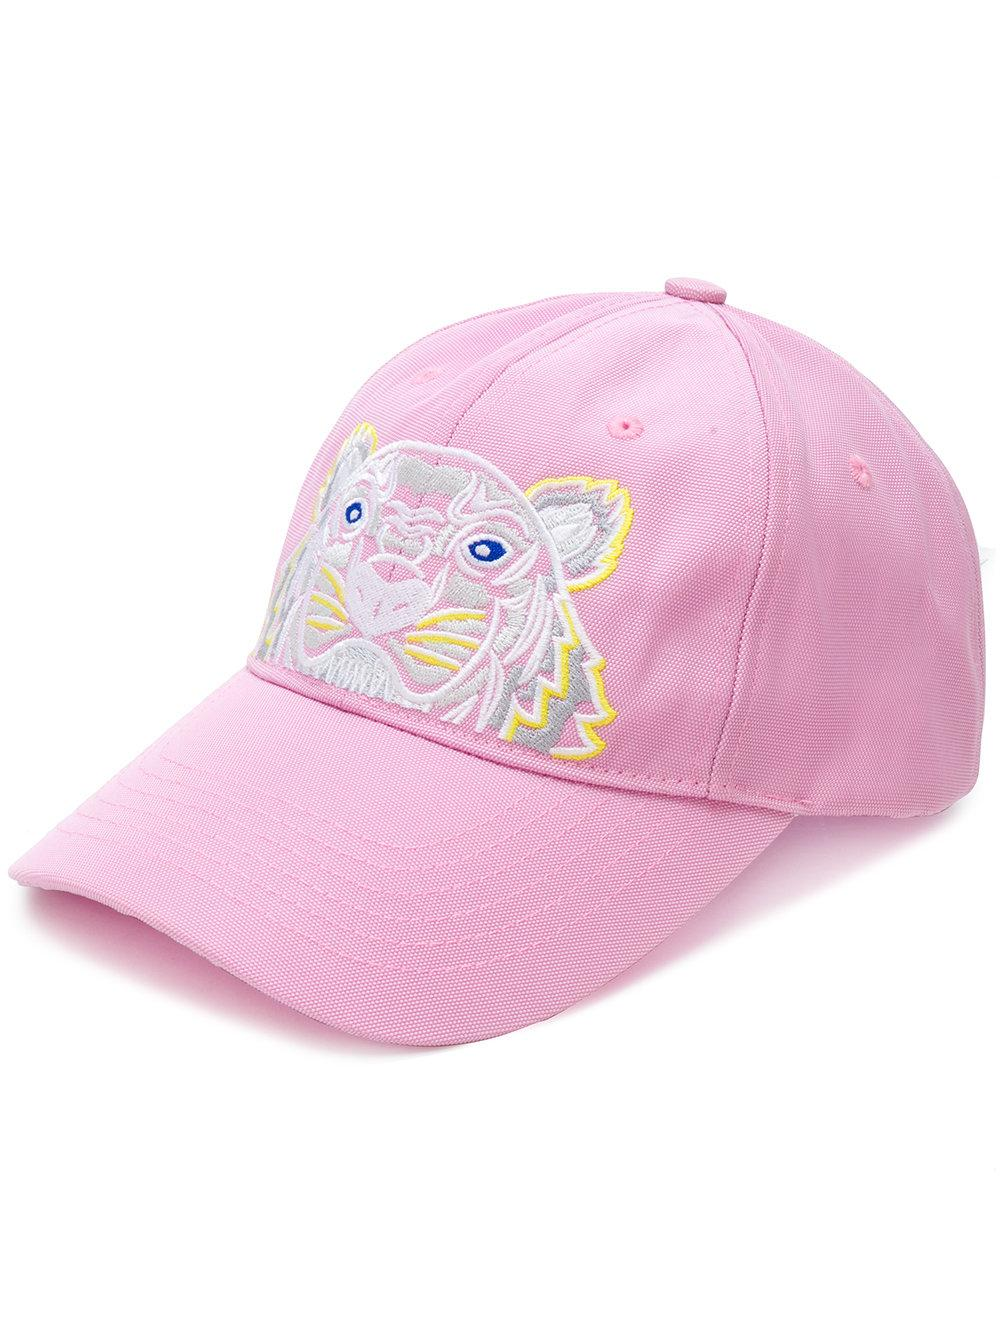 a414a019469 Kenzo Adjustable Men S Hat Baseball Cap In Pink